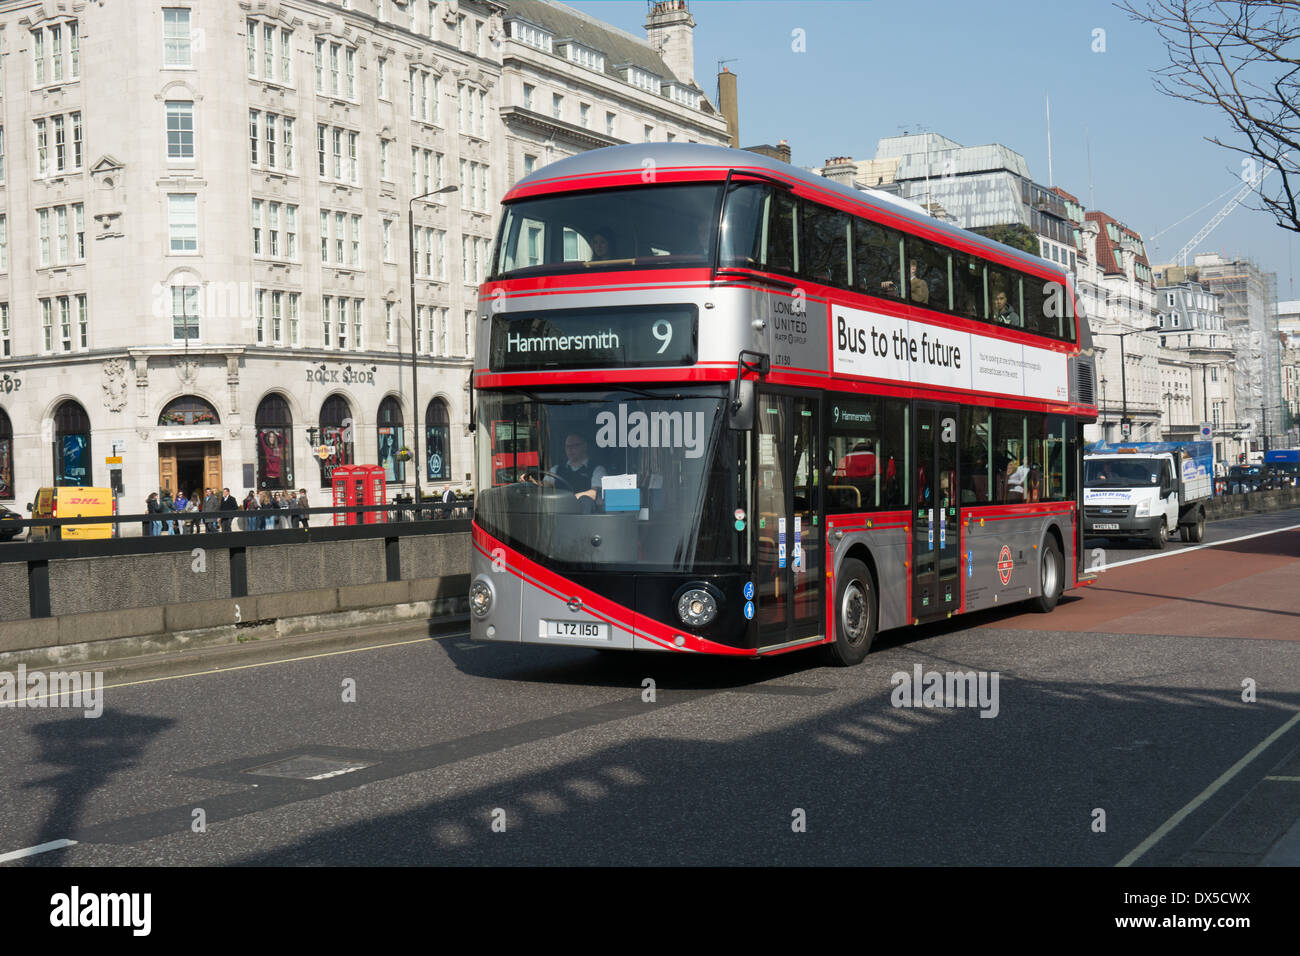 One the new Routemasters in London has been painted mainly silver to mark 2014 as the year of the bus. - Stock Image